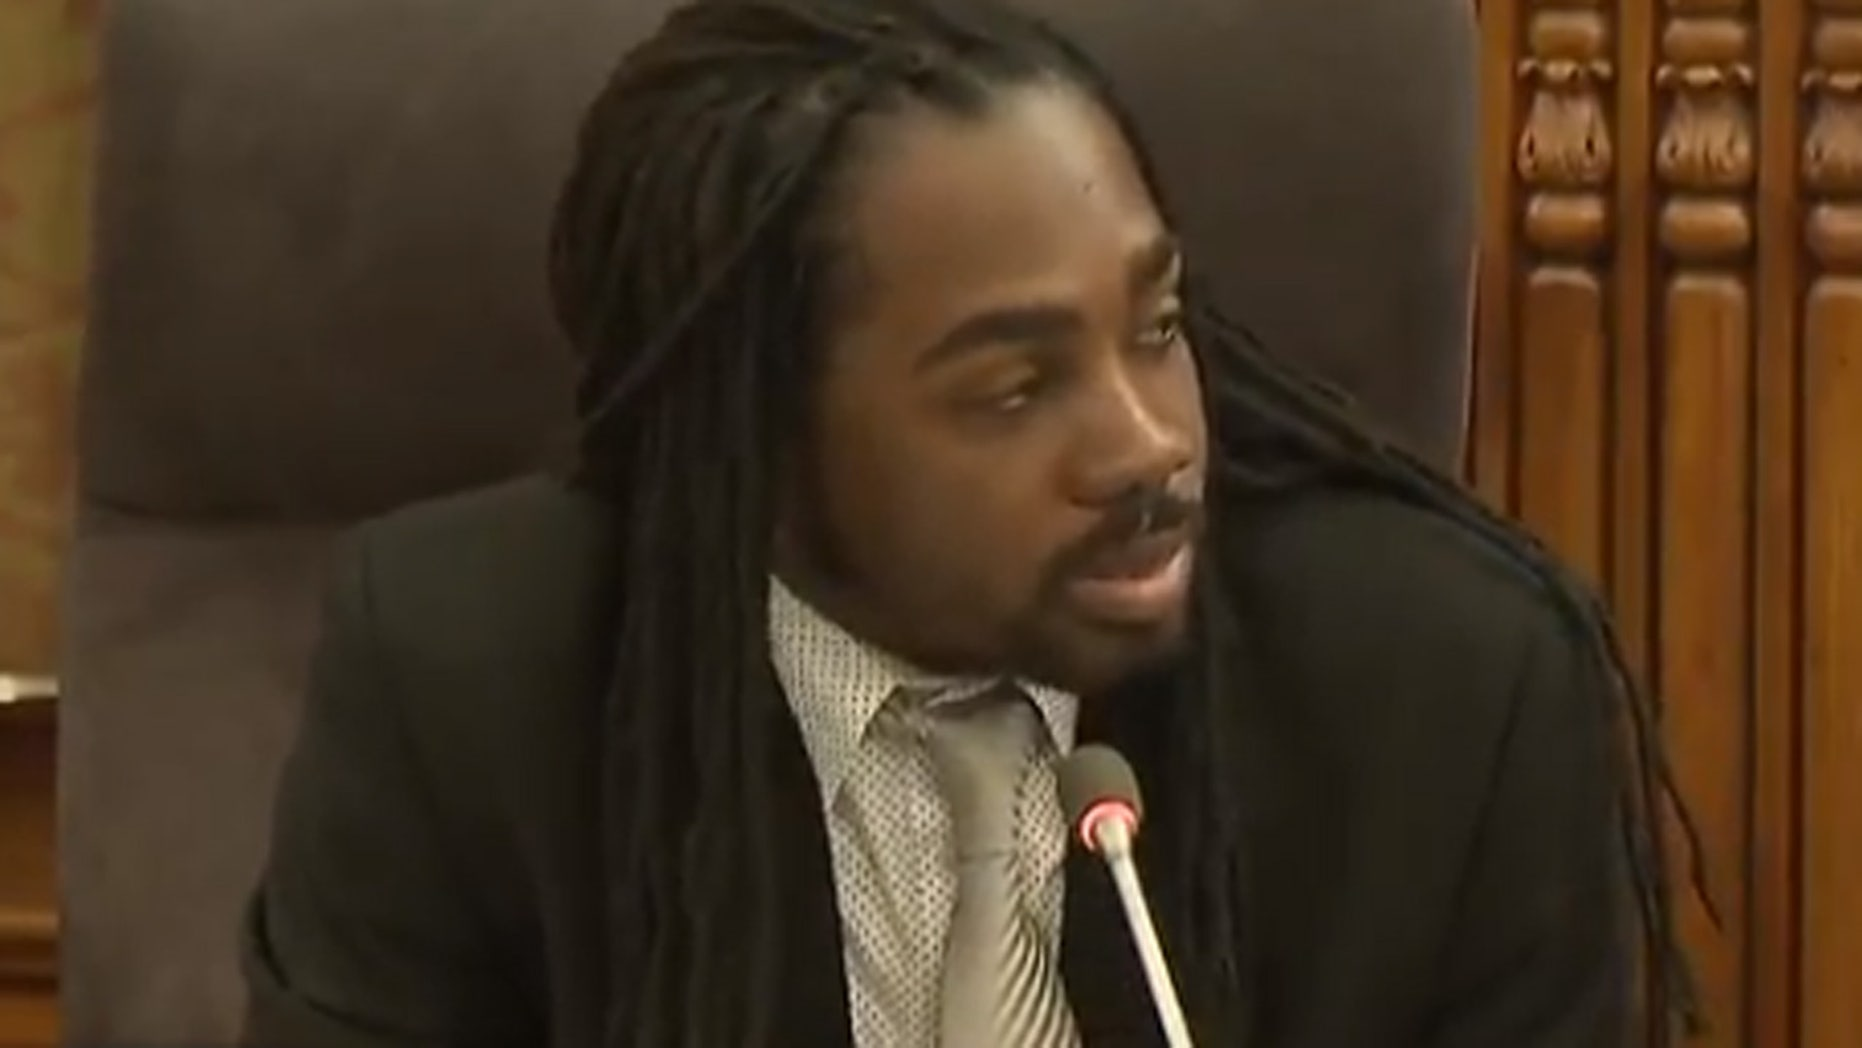 Washington D.C. city council member Trayon White.